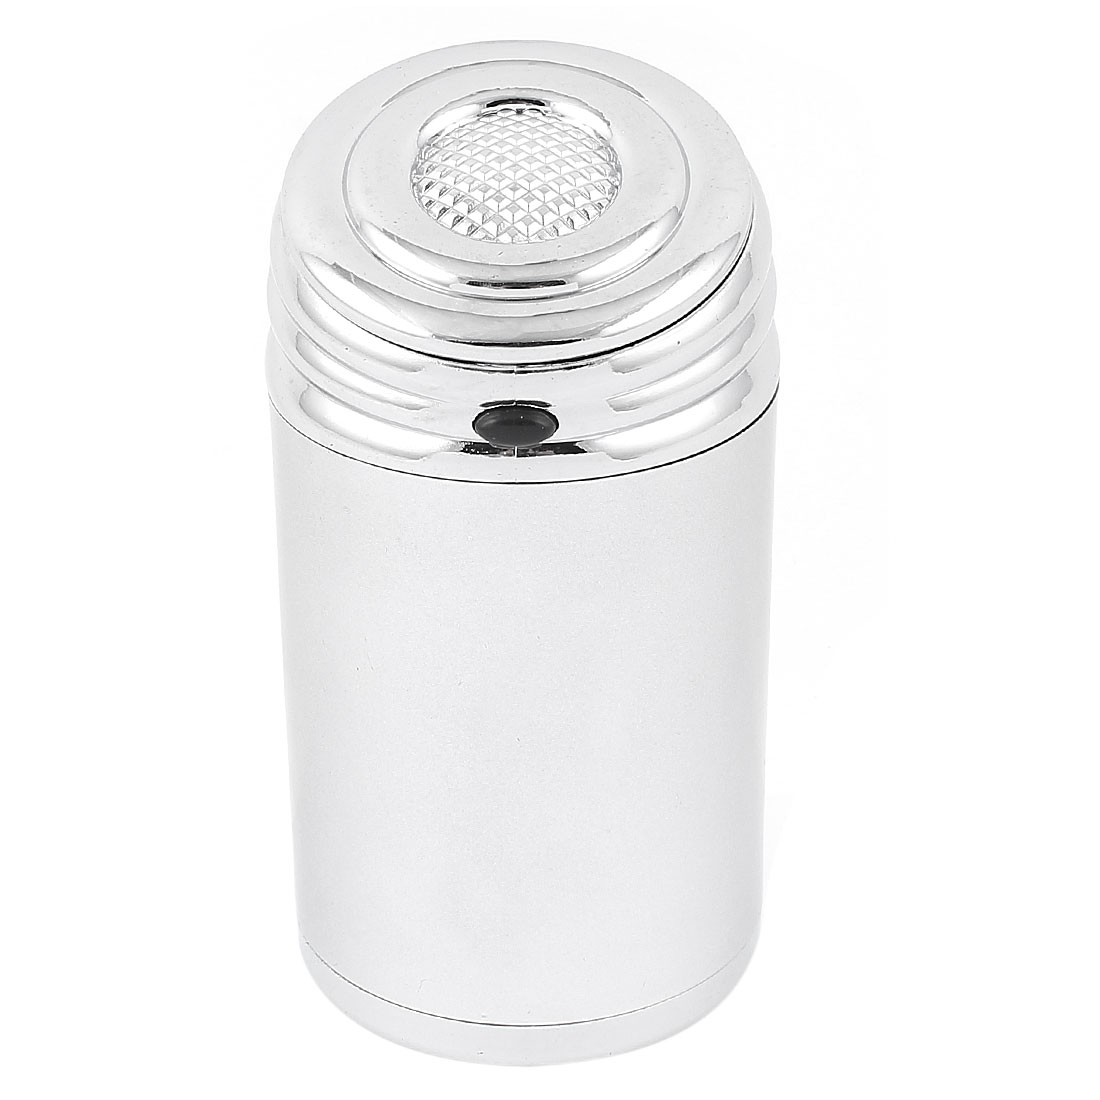 Silver Tone Metal Cylinder Shaped Slant Flap Lid Ash Tray Ashtray for Car Vehicle